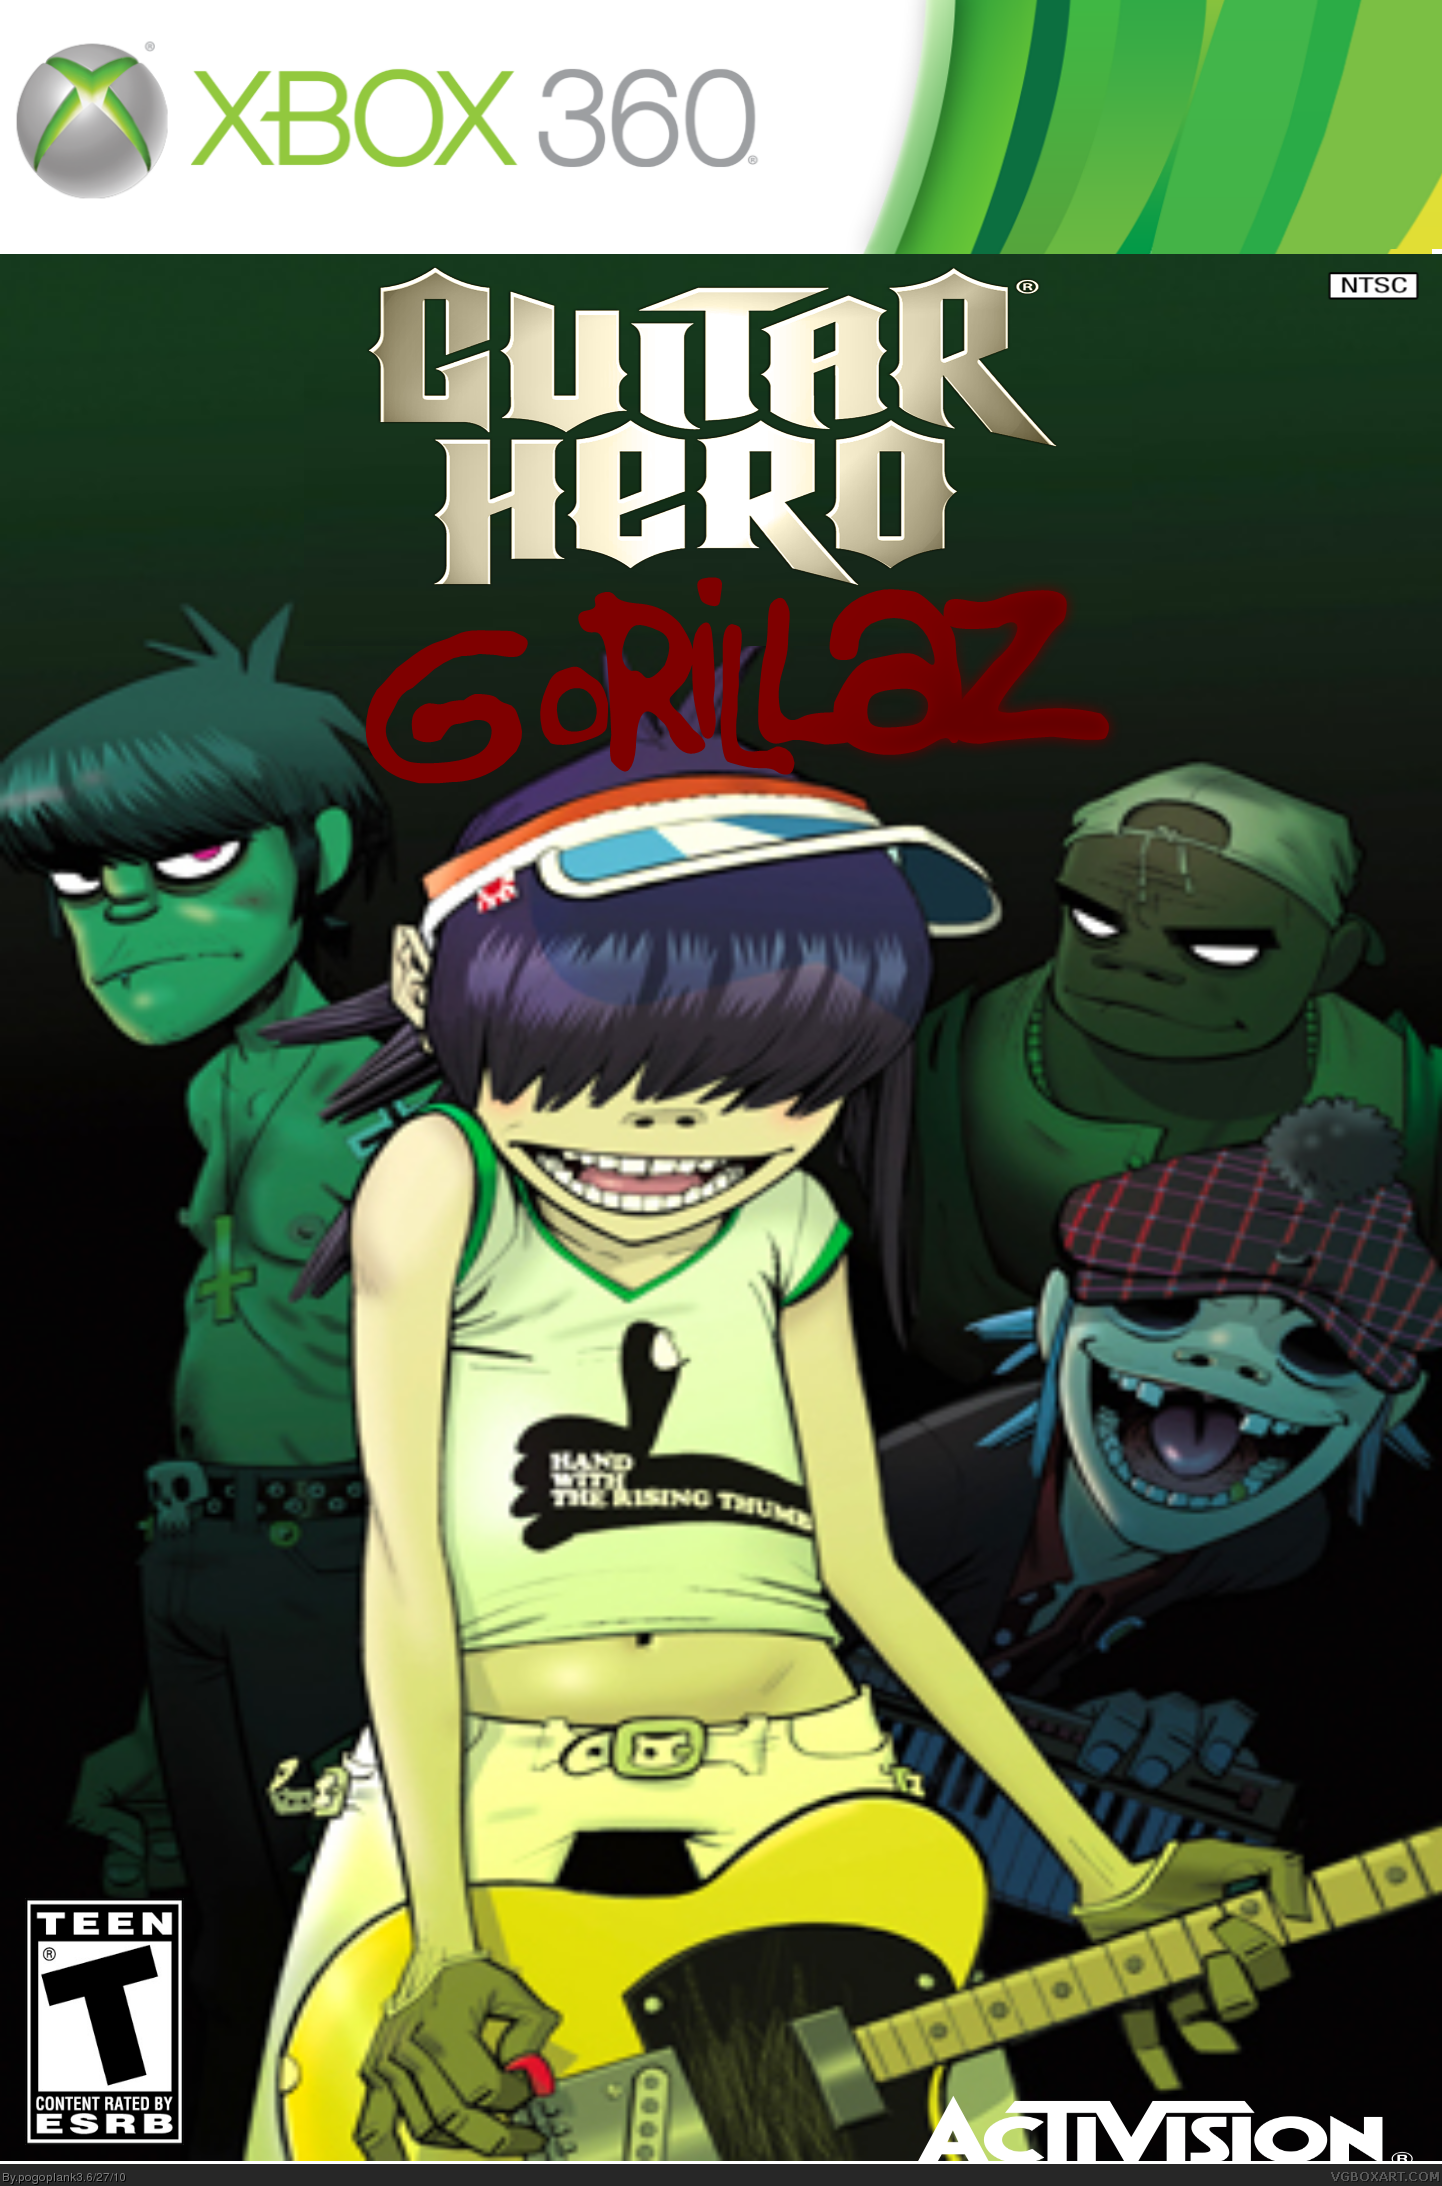 Guitar Hero Gorillaz box cover